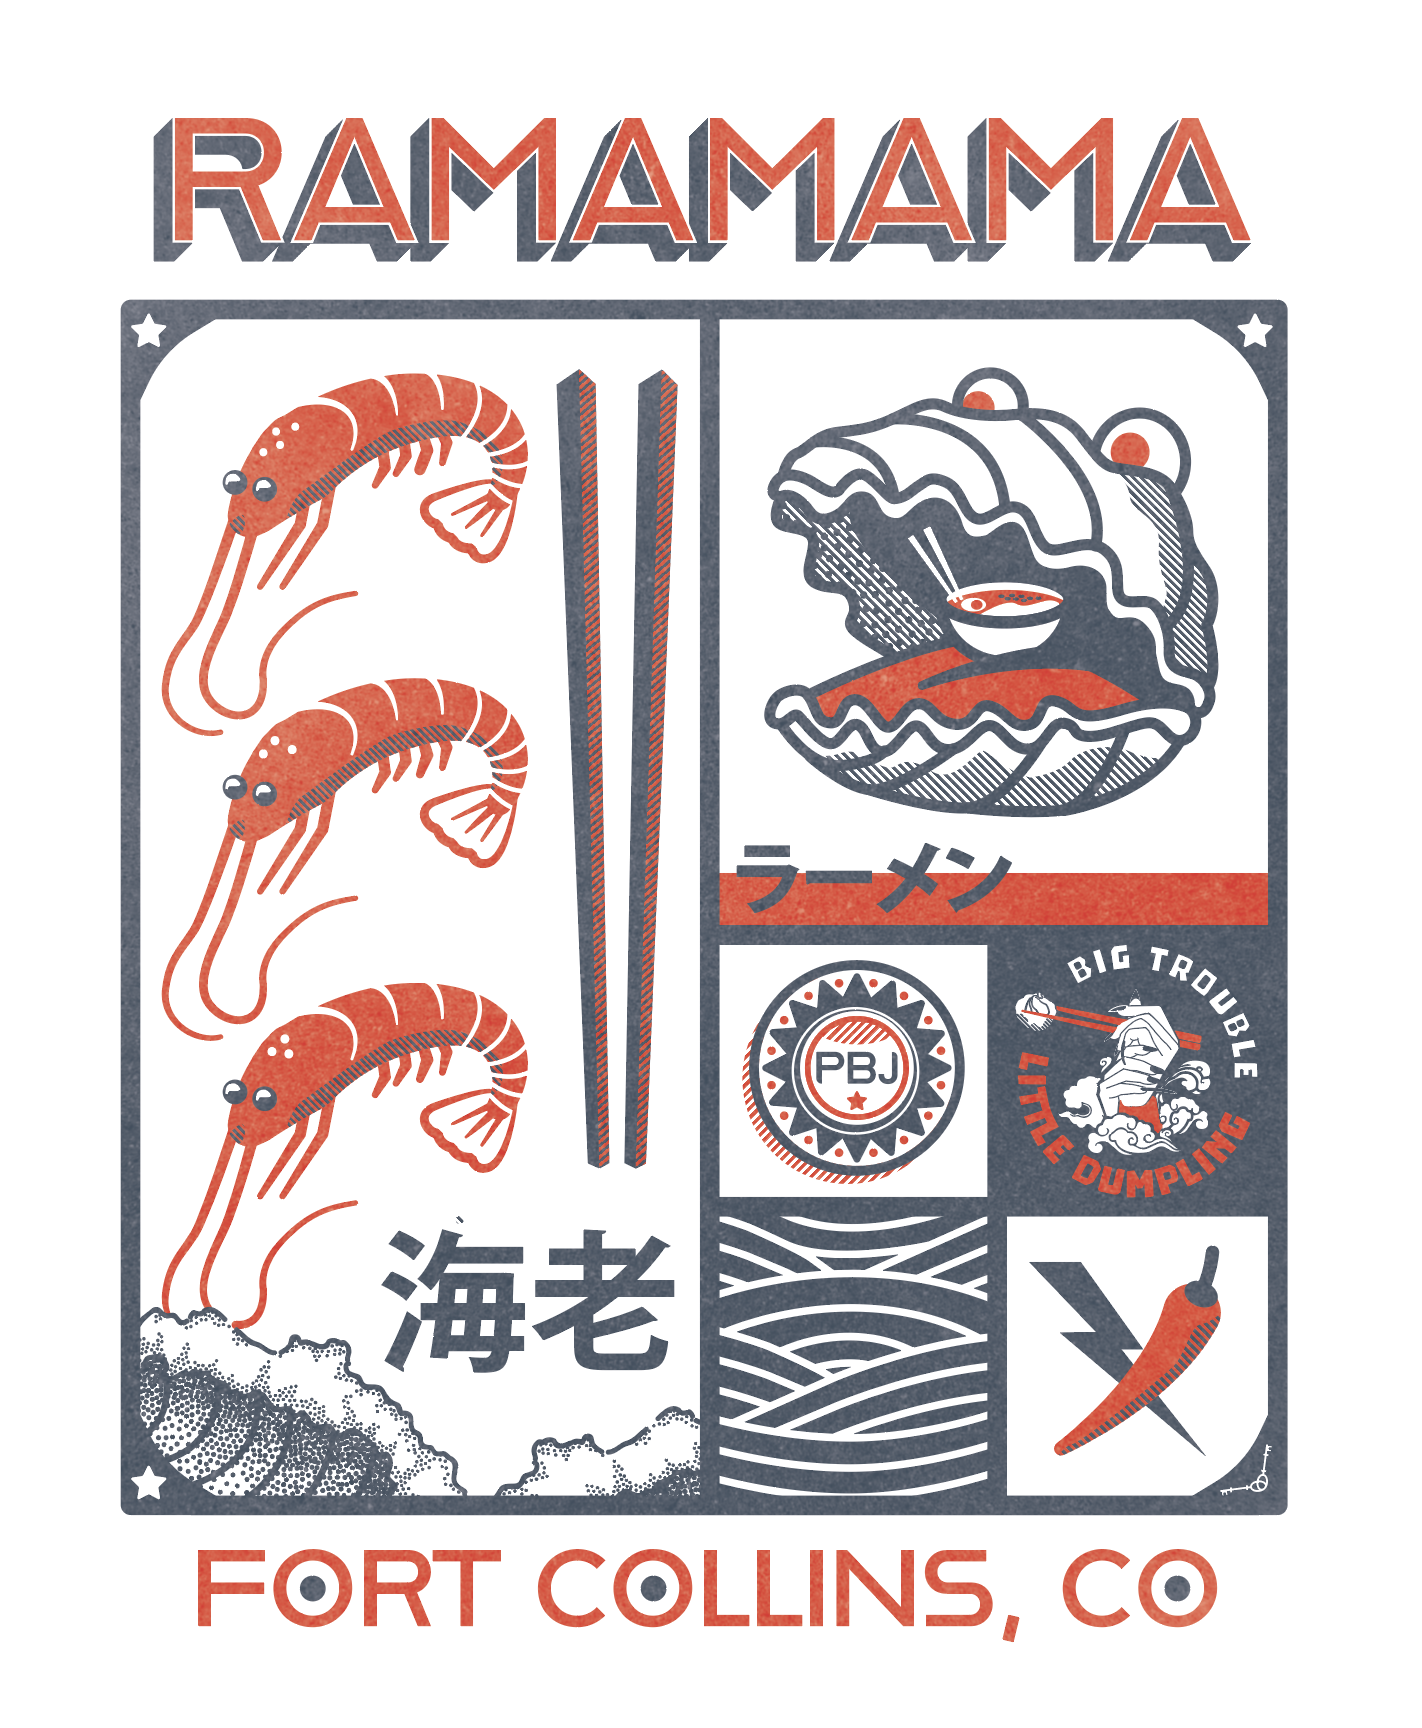 Limited Edition Ramamama Pop-up T shirt